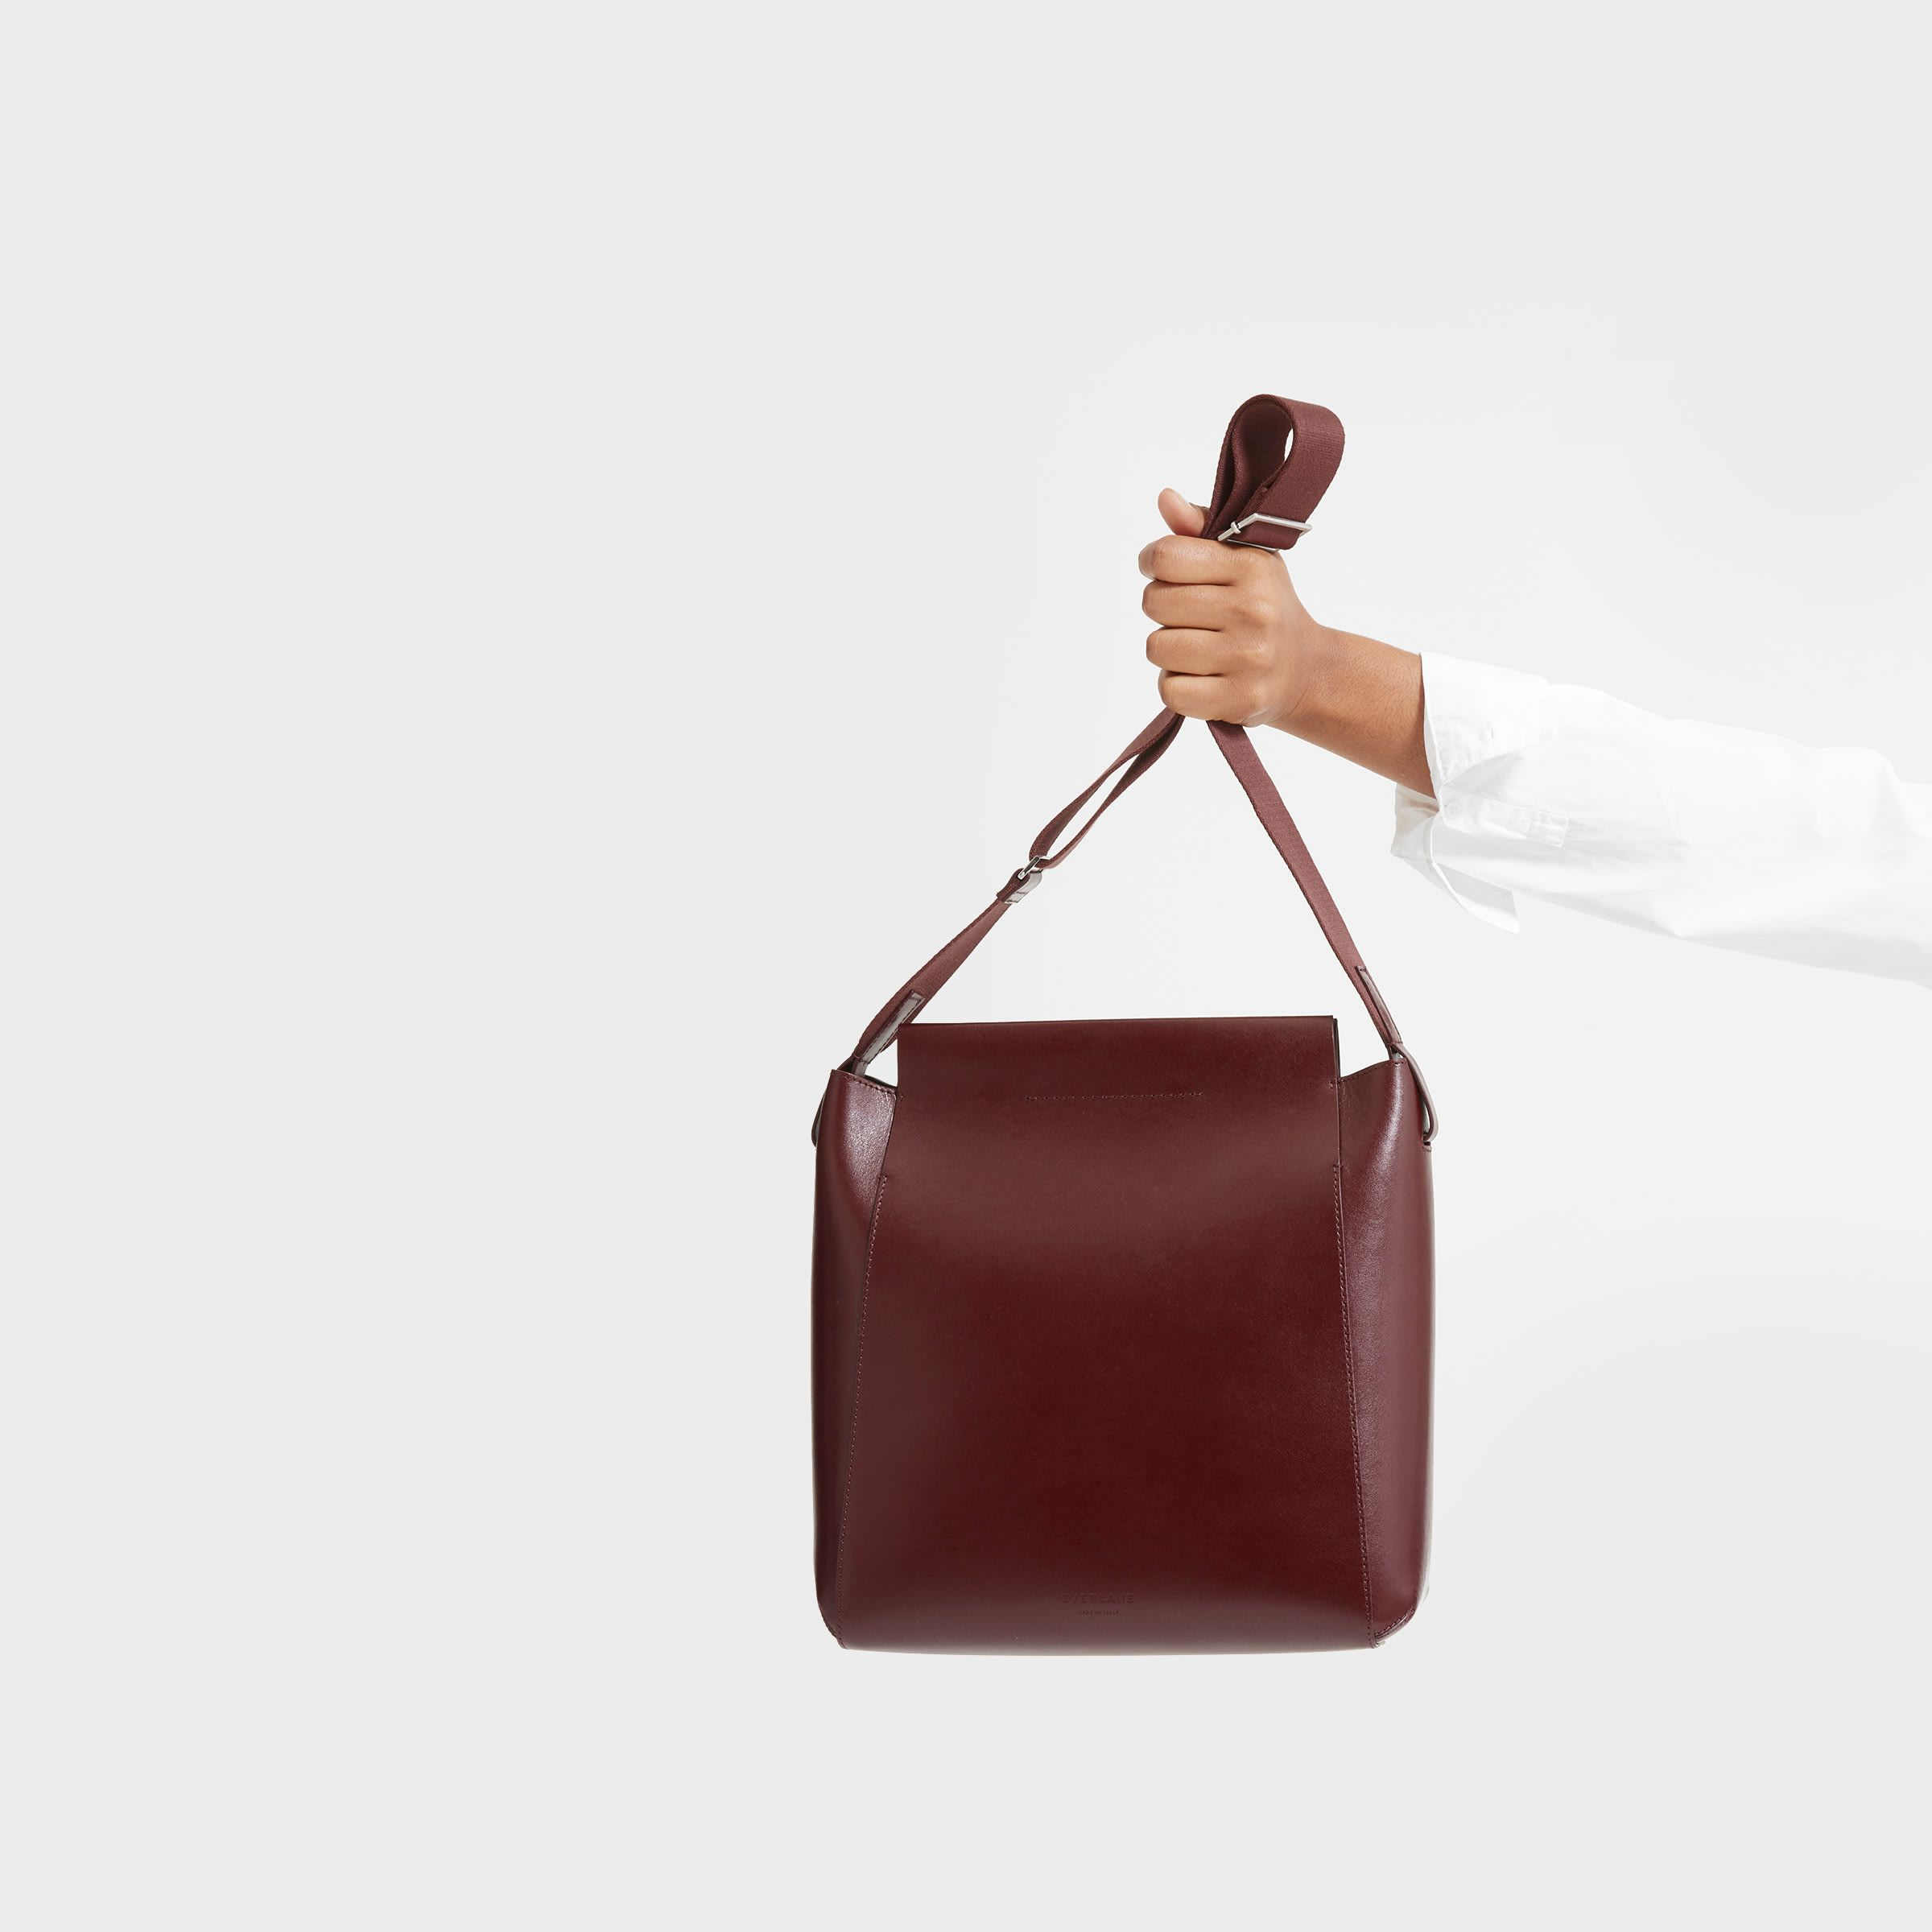 2c45a9d81 Shop Everlane now for a custom curated collection of women's Italian leather  handbags and small goods, made in Italy. Free U.S. shipping on first order,  ...